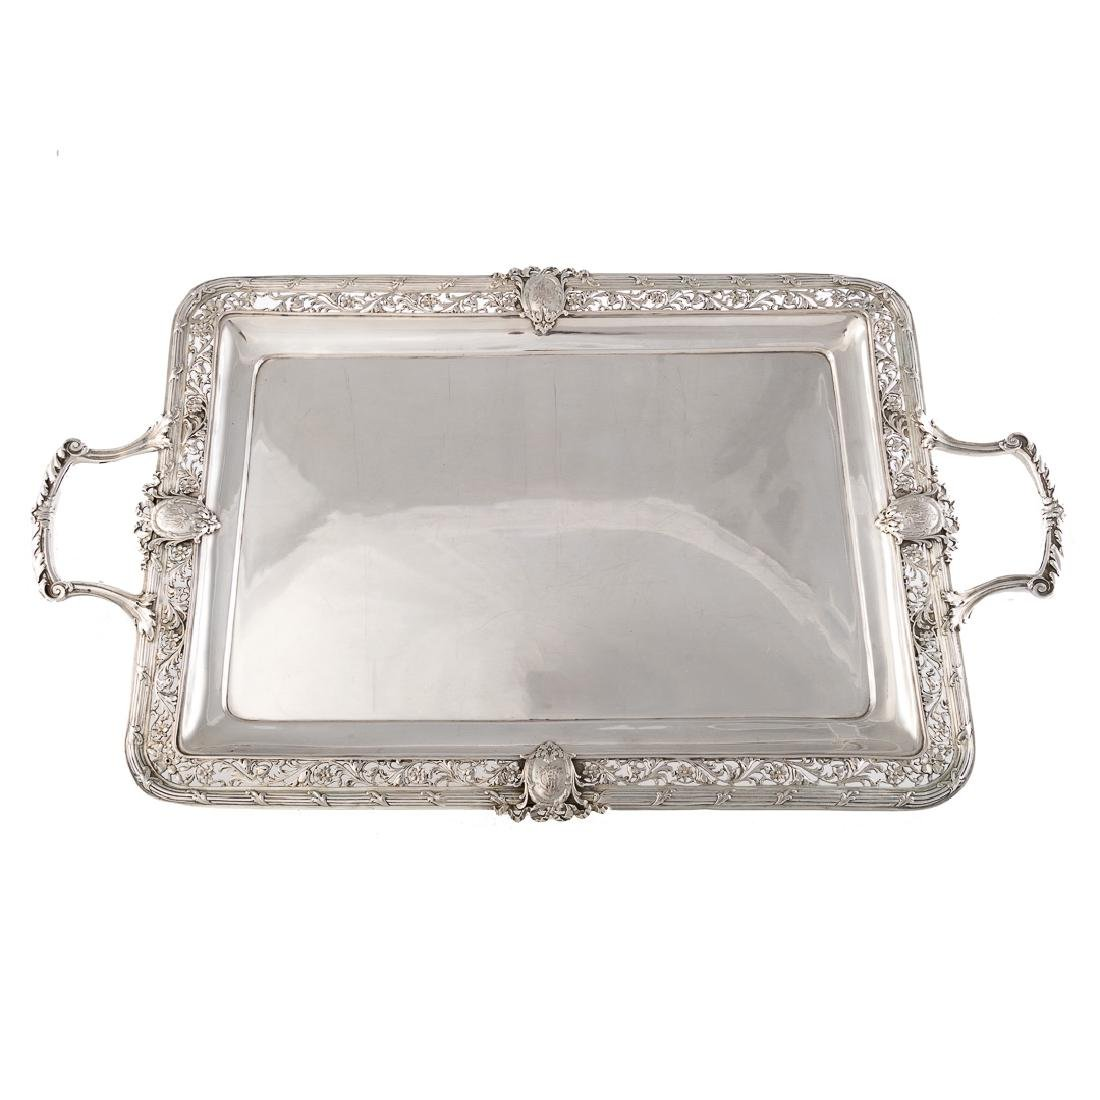 Continental silver double handle tray